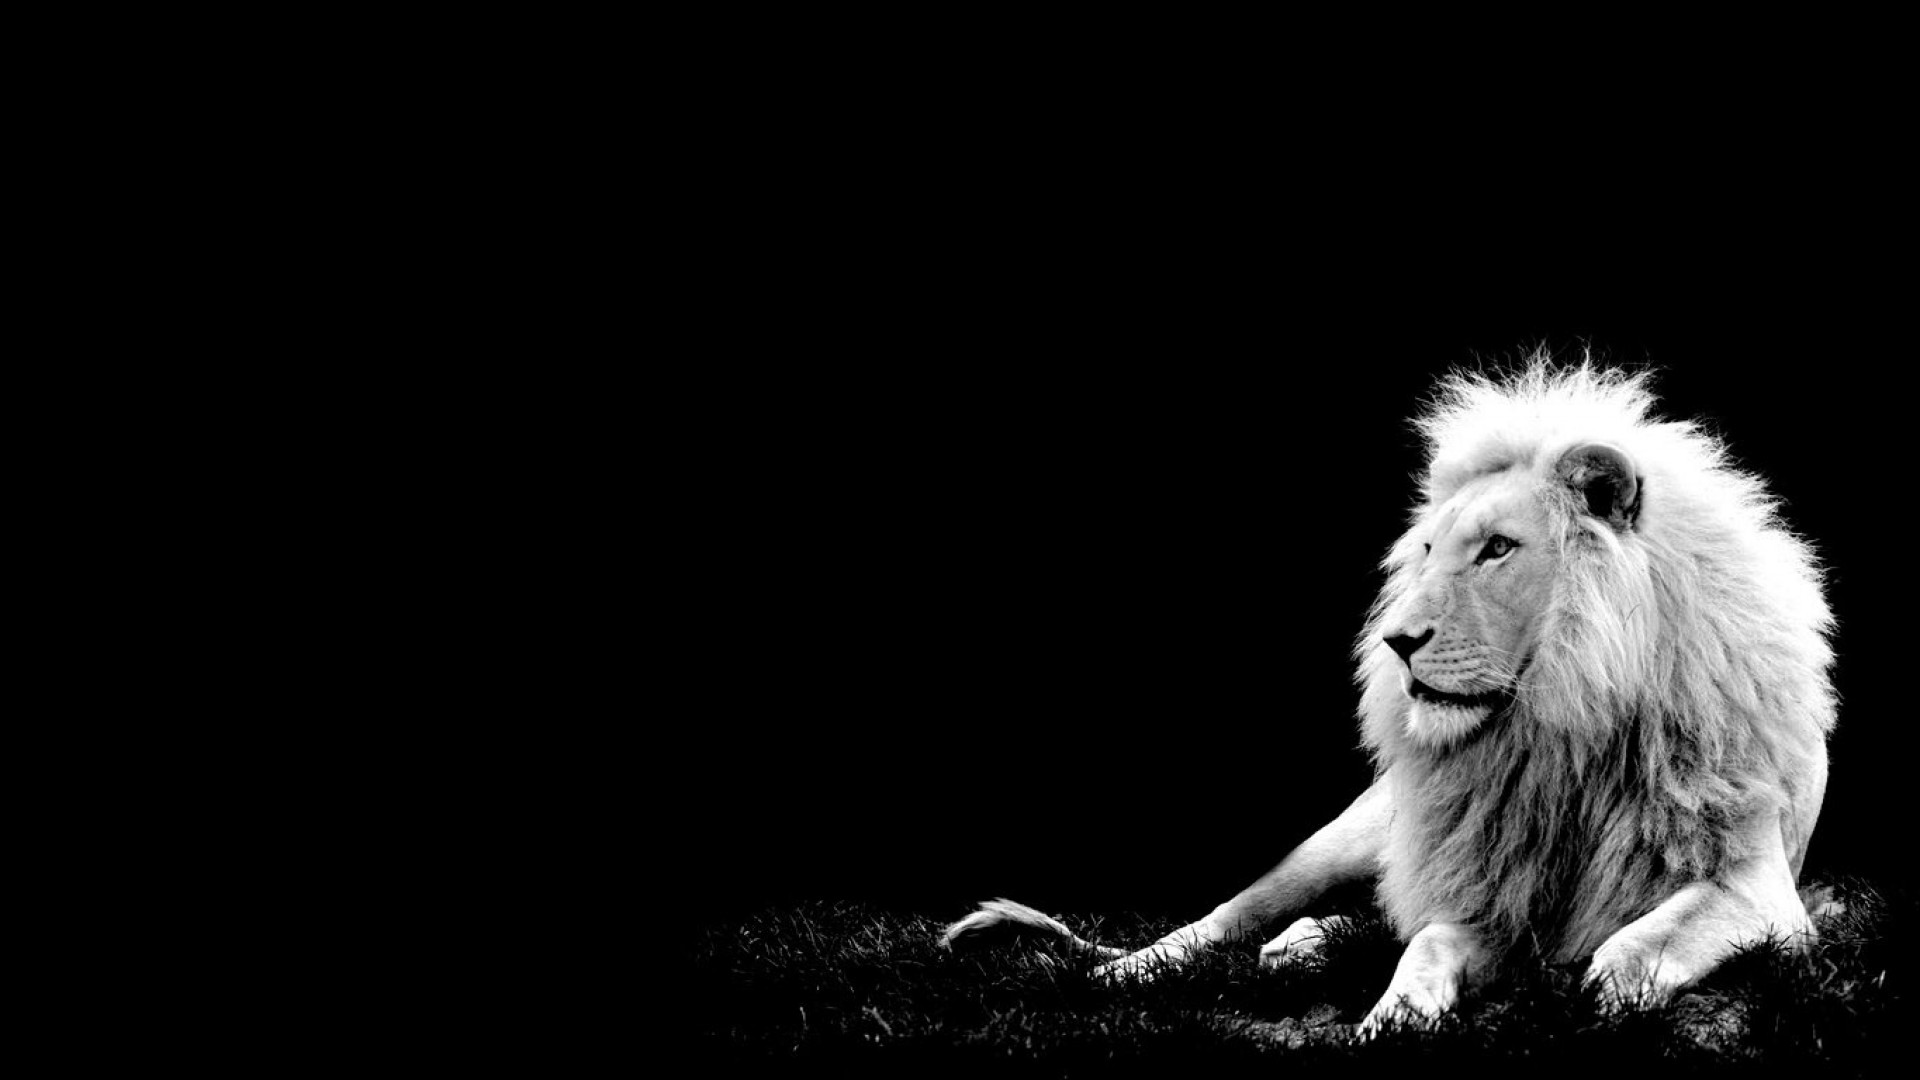 Free Download Lion Wallpapers Best Wallpapers 1920x1080 For Your